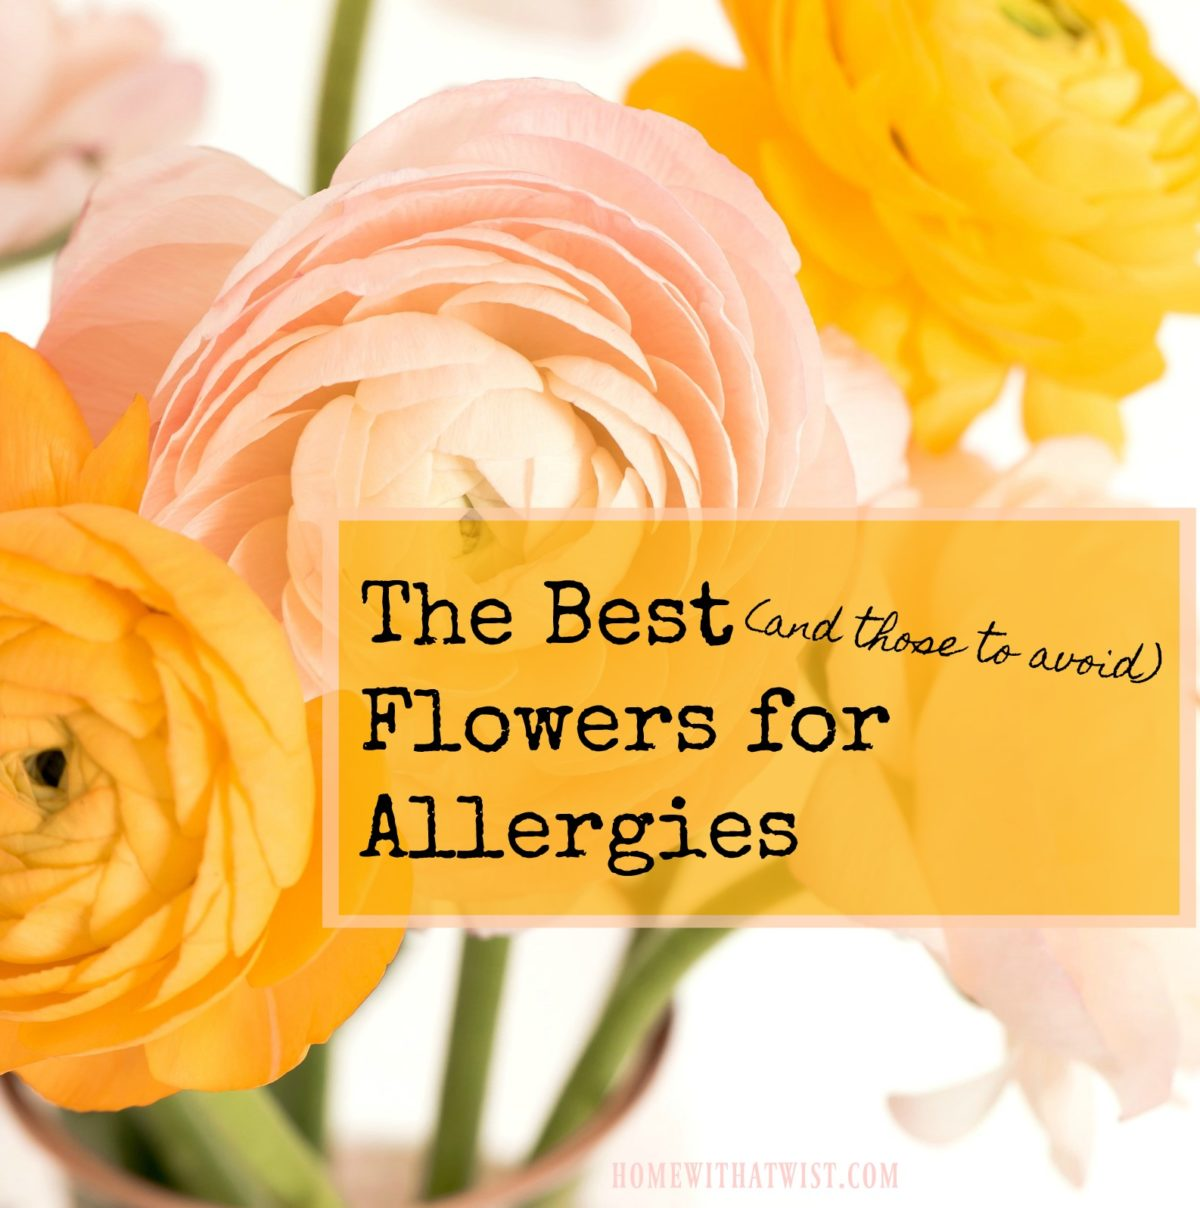 The Best (and those to avoid) Flowers for Allergies